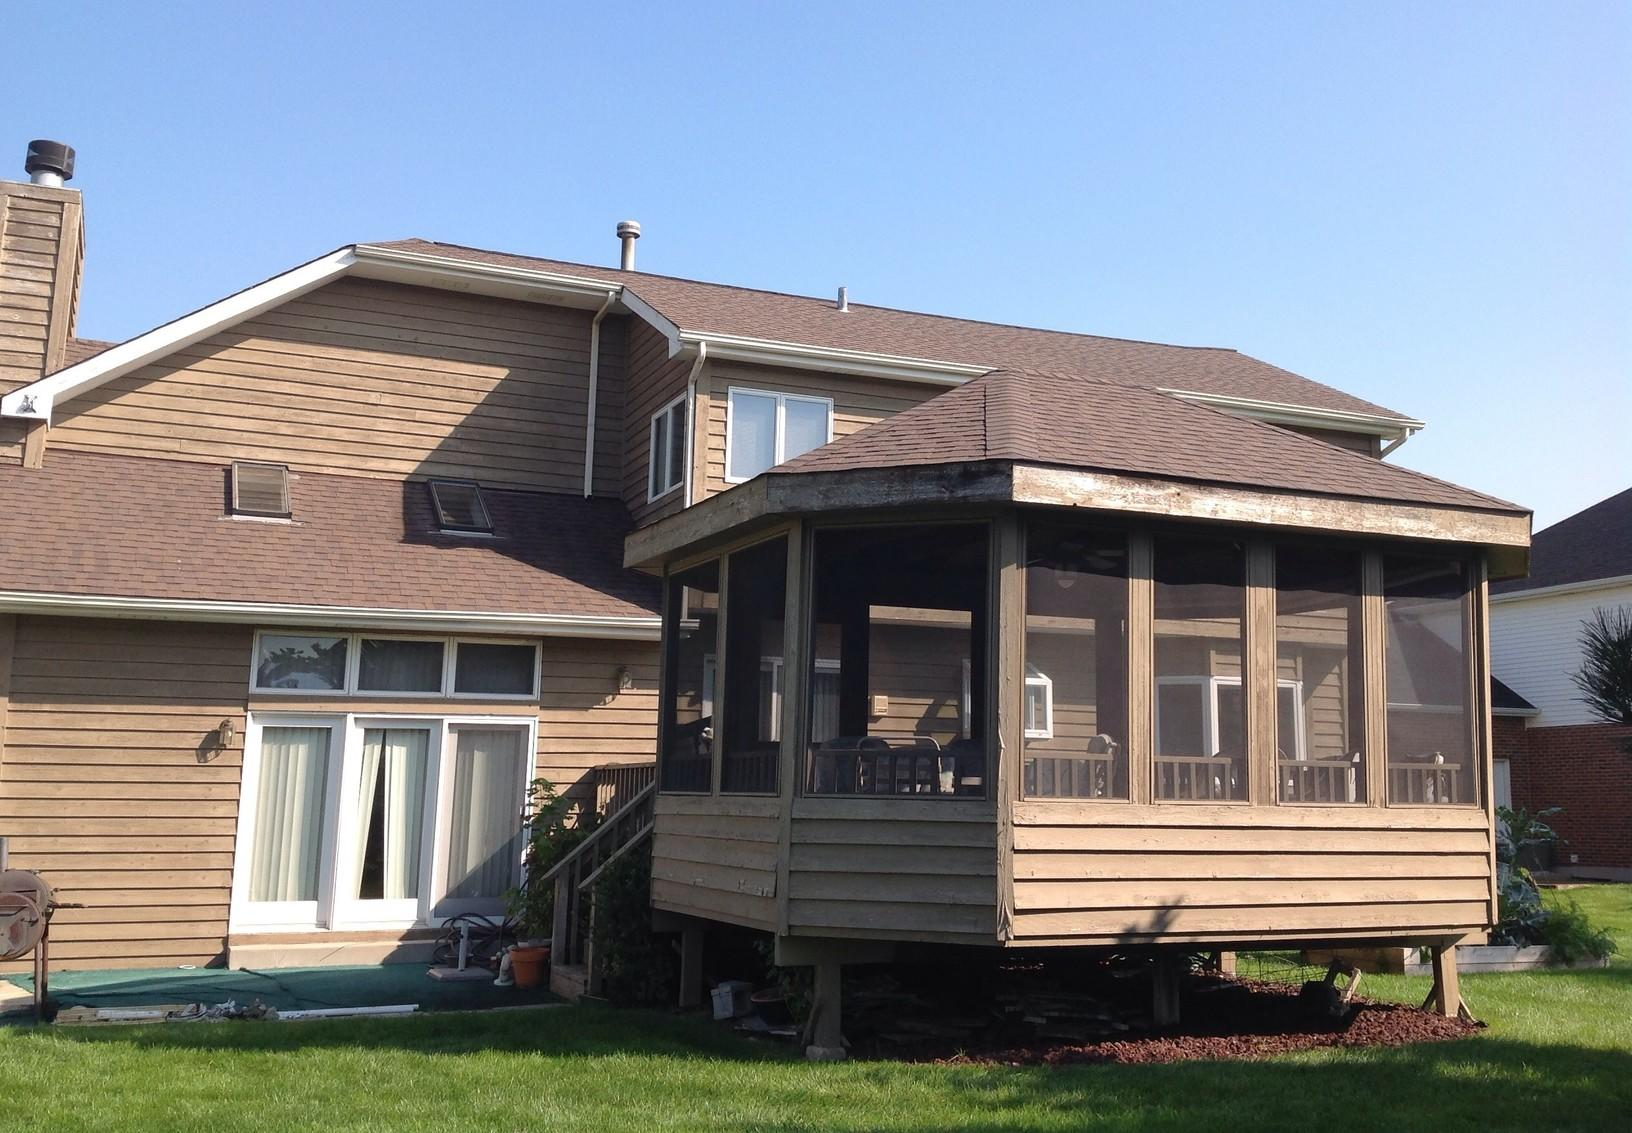 Rear of the home